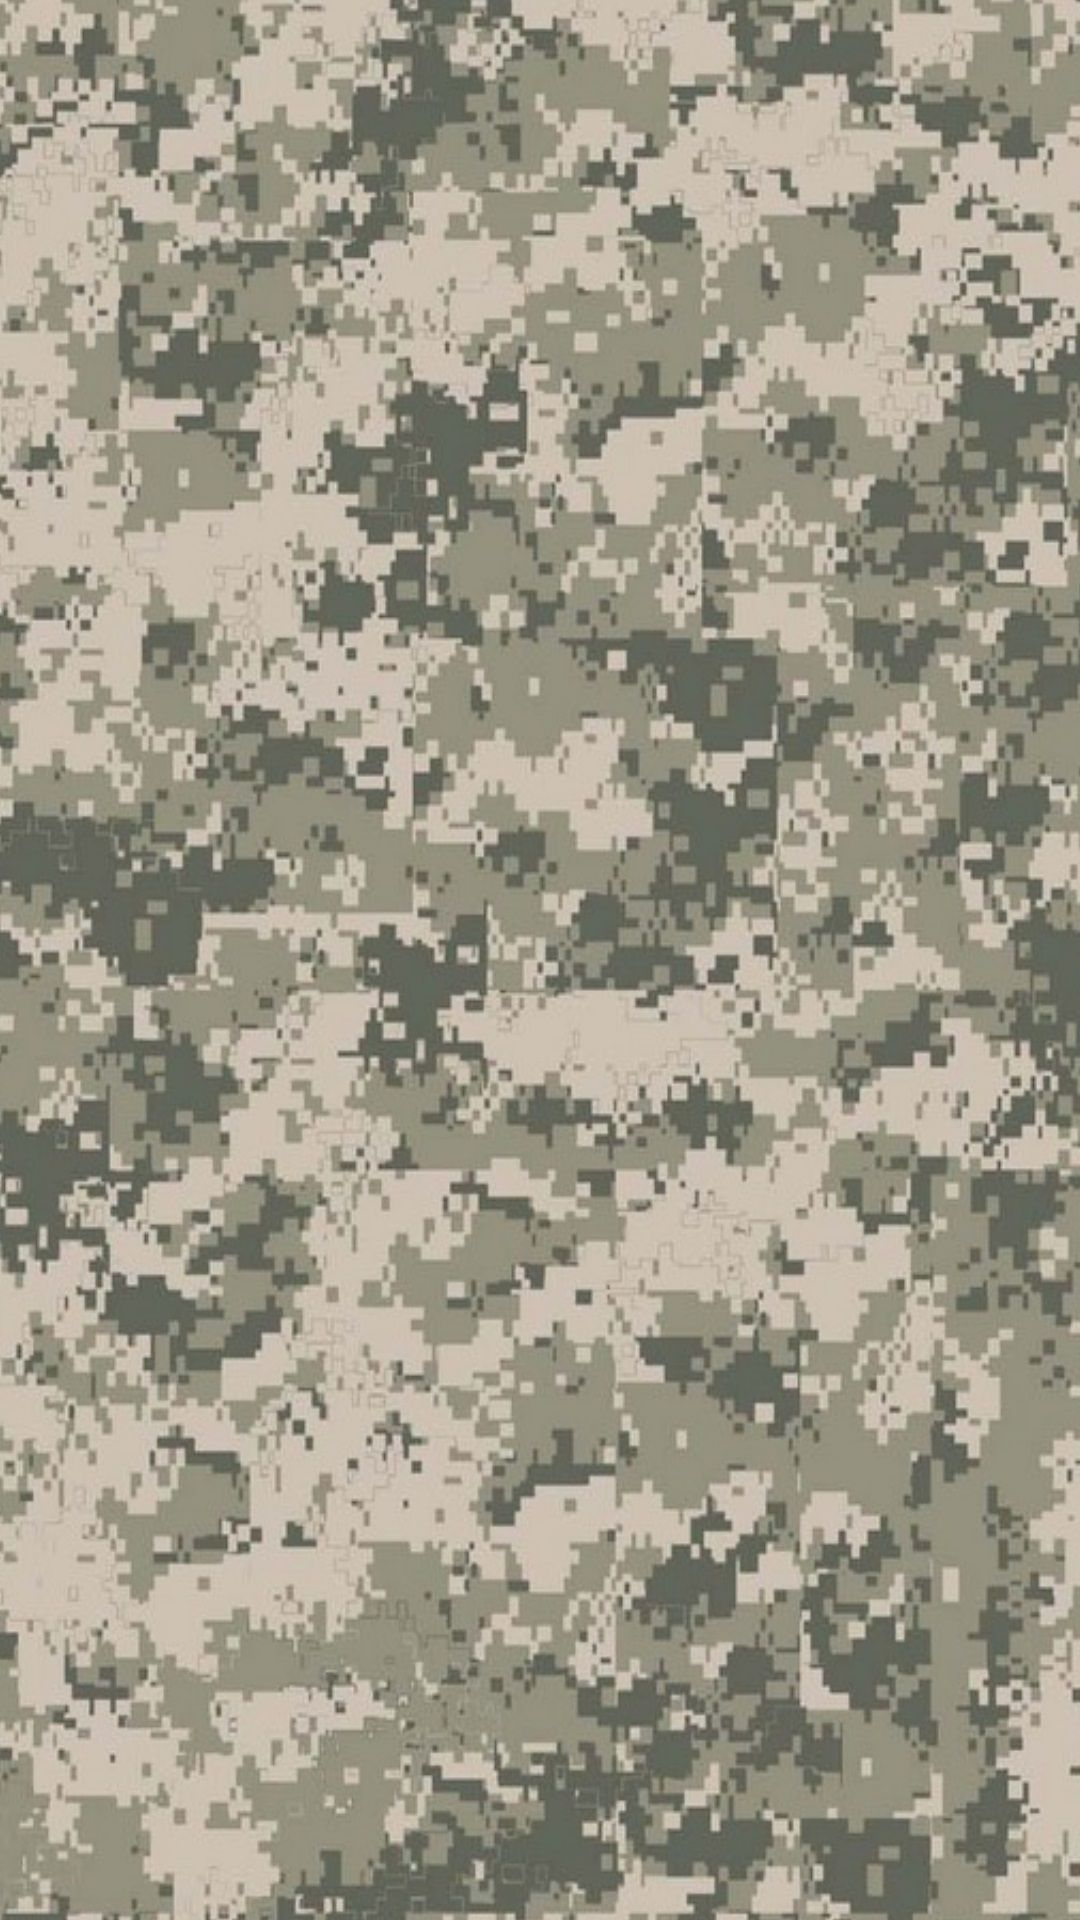 camouflage wallpaper for iphone or android. tags: camo, hunting